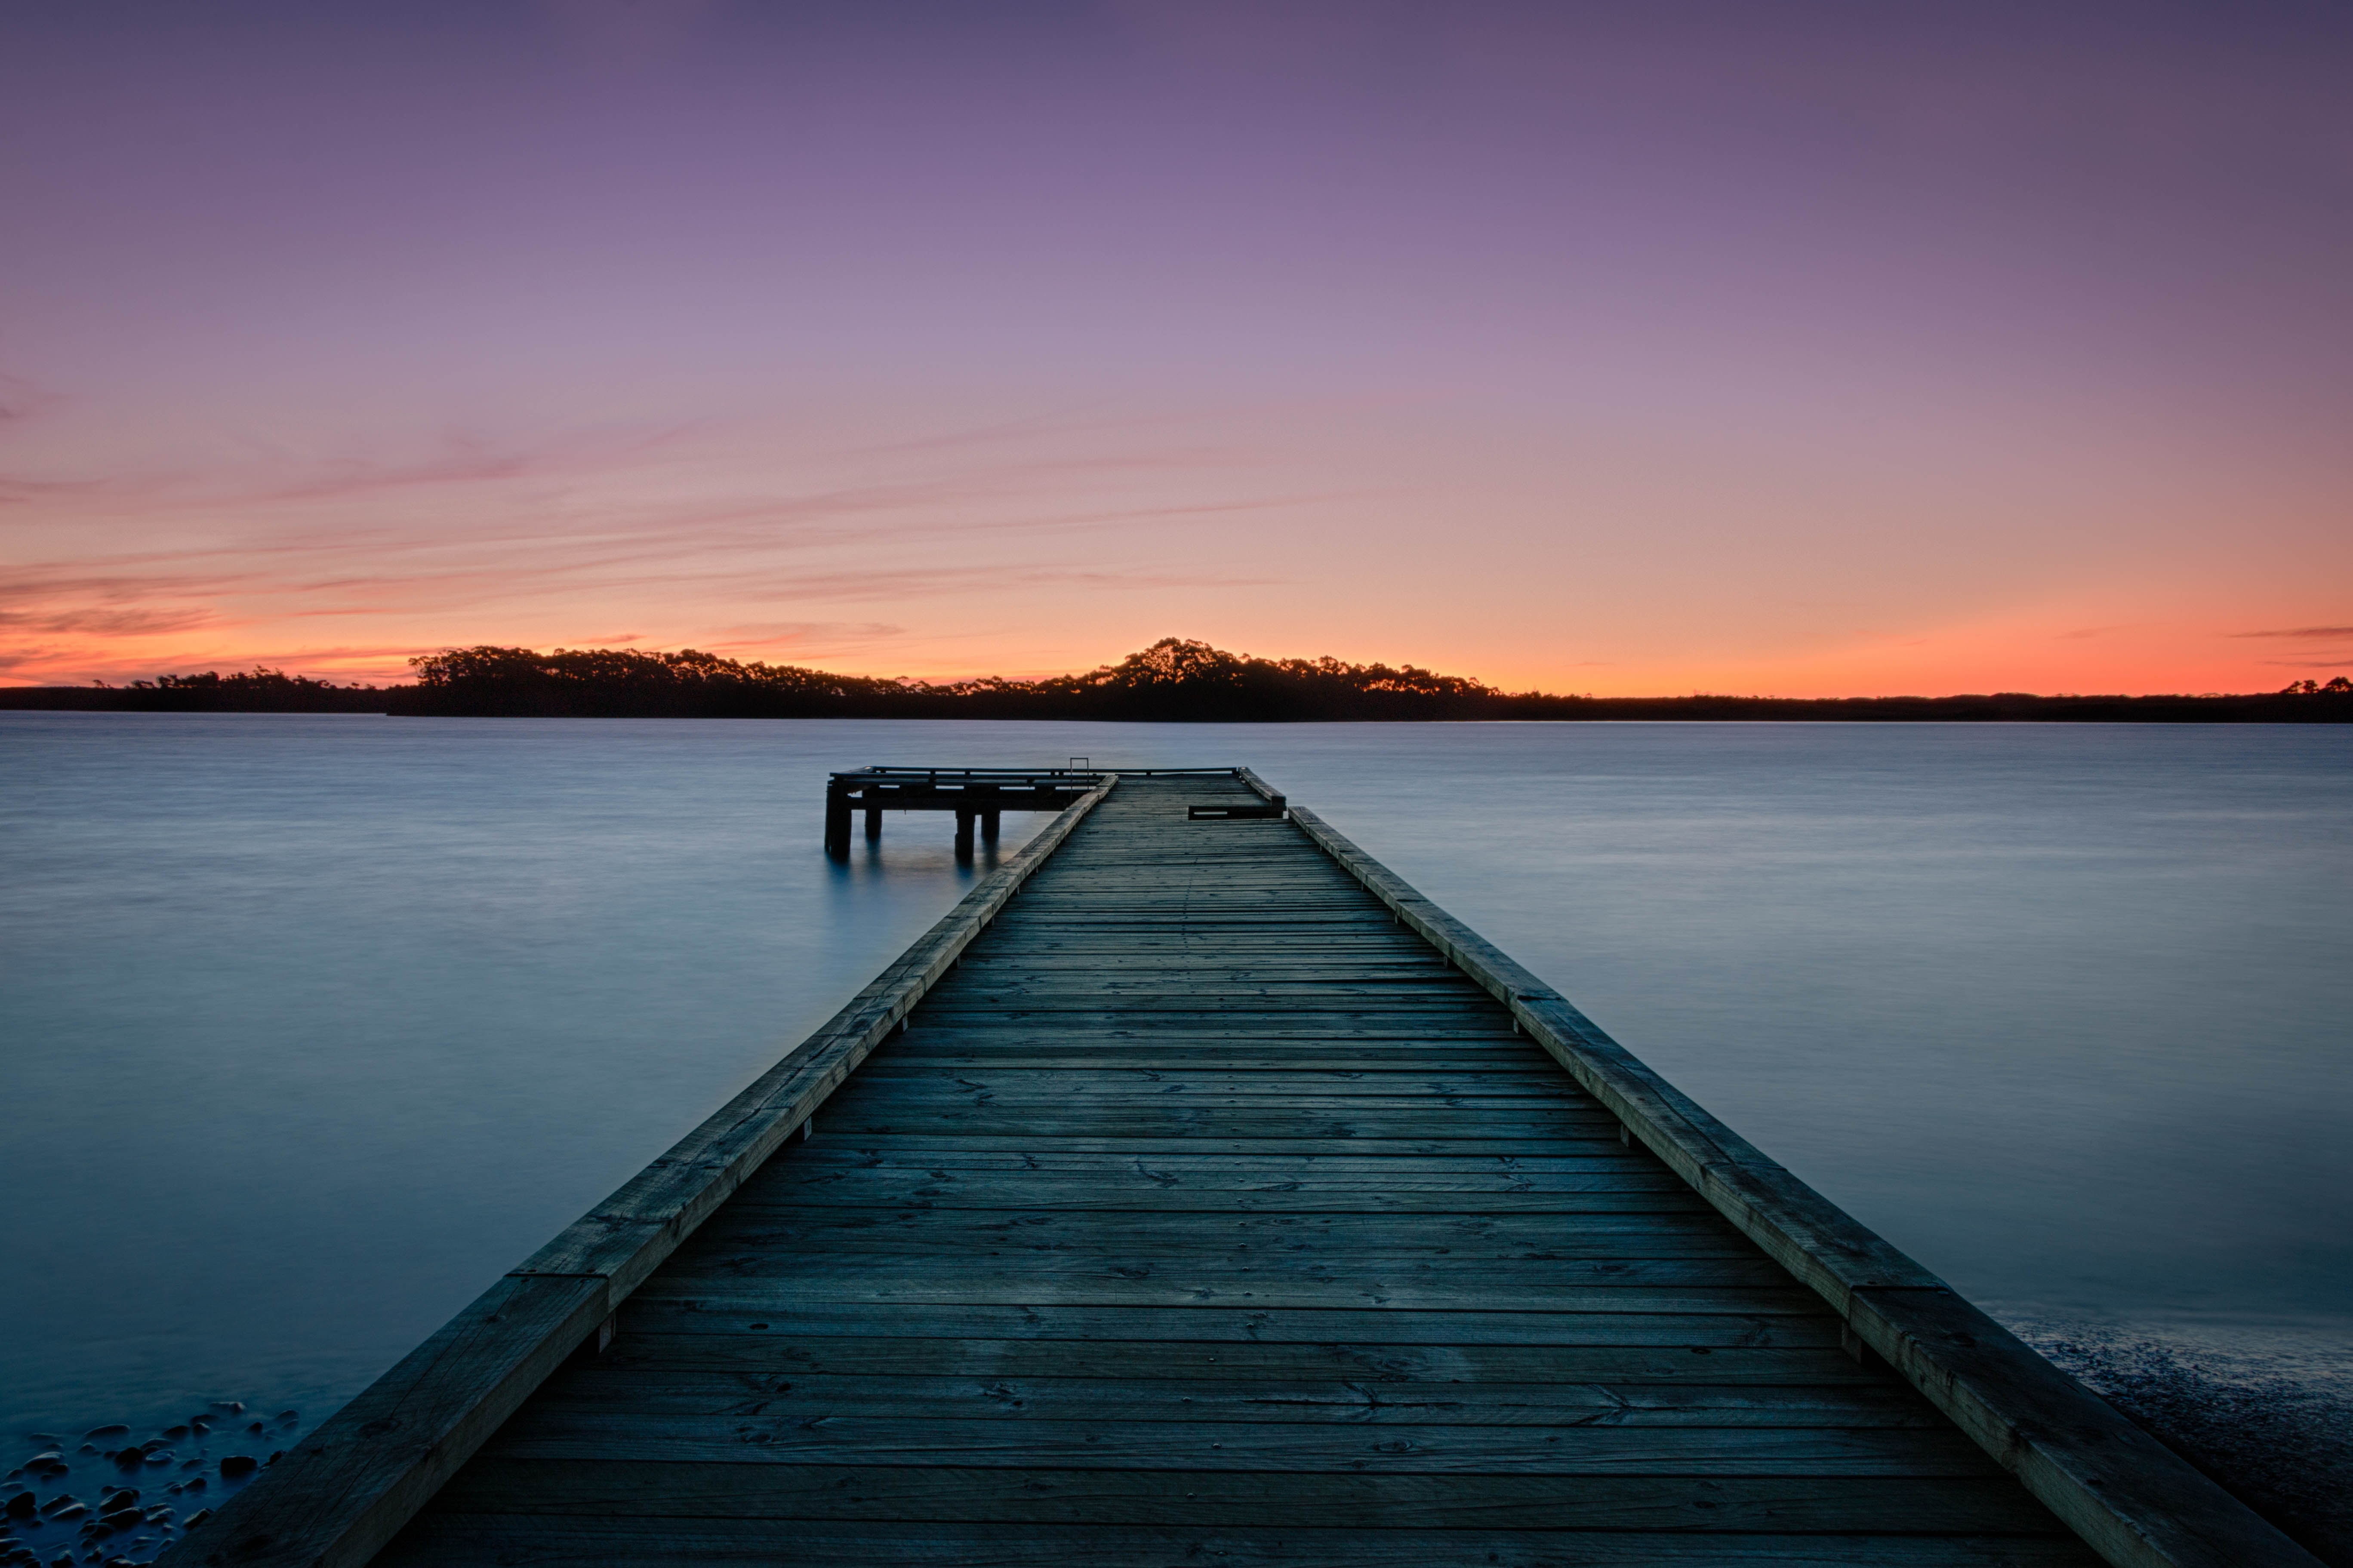 Long exposure sunset by the pier in Strahan, Tasmania, Australia